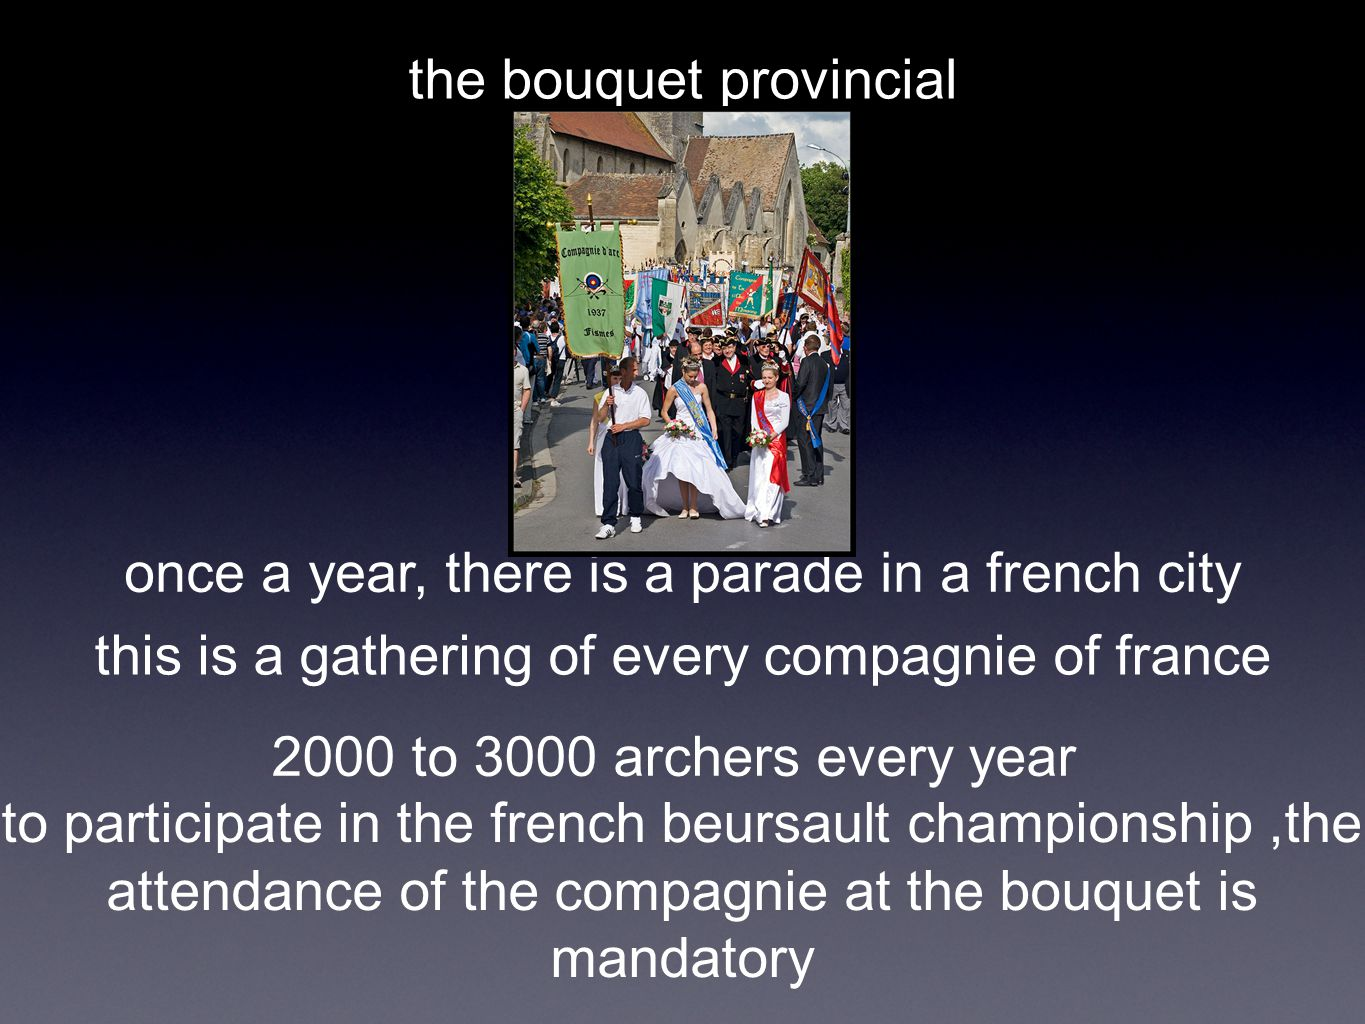 the bouquet provincial once a year, there is a parade in a french city this is a gathering of every compagnie of france 2000 to 3000 archers every year to participate in the french beursault championship,the attendance of the compagnie at the bouquet is mandatory